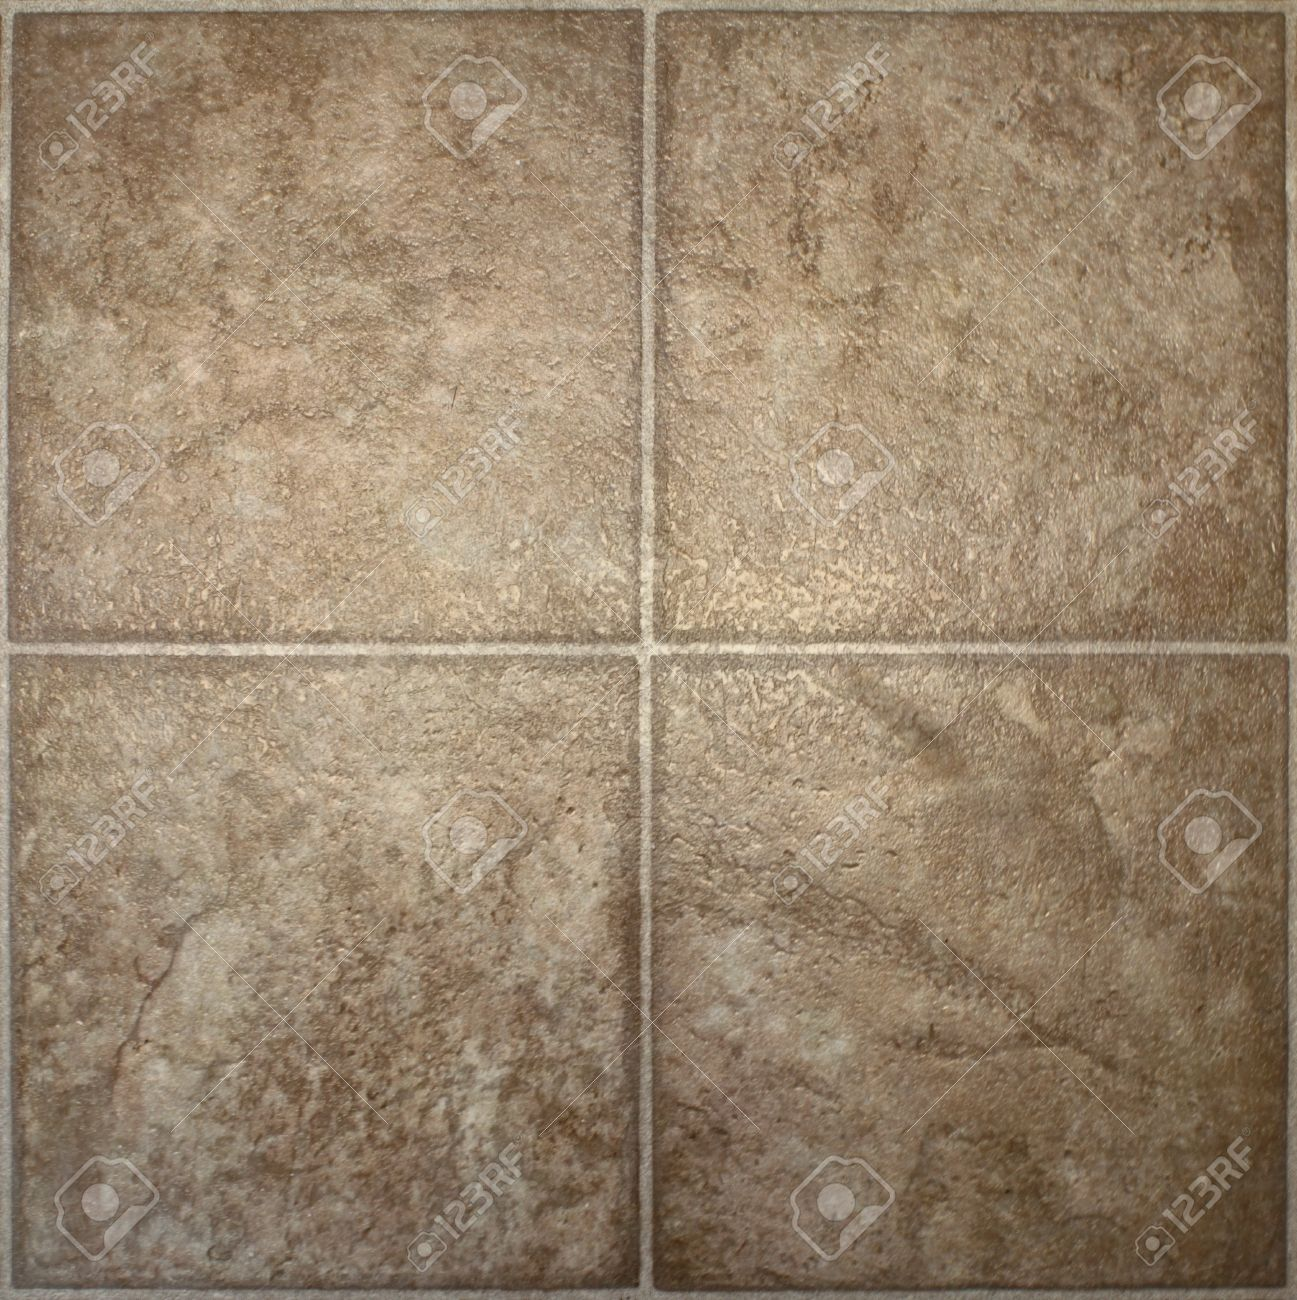 Kitchen Floor Tiles Texture Four Squares Of Brown Textured Linoleum Floor Tile Stock Photo